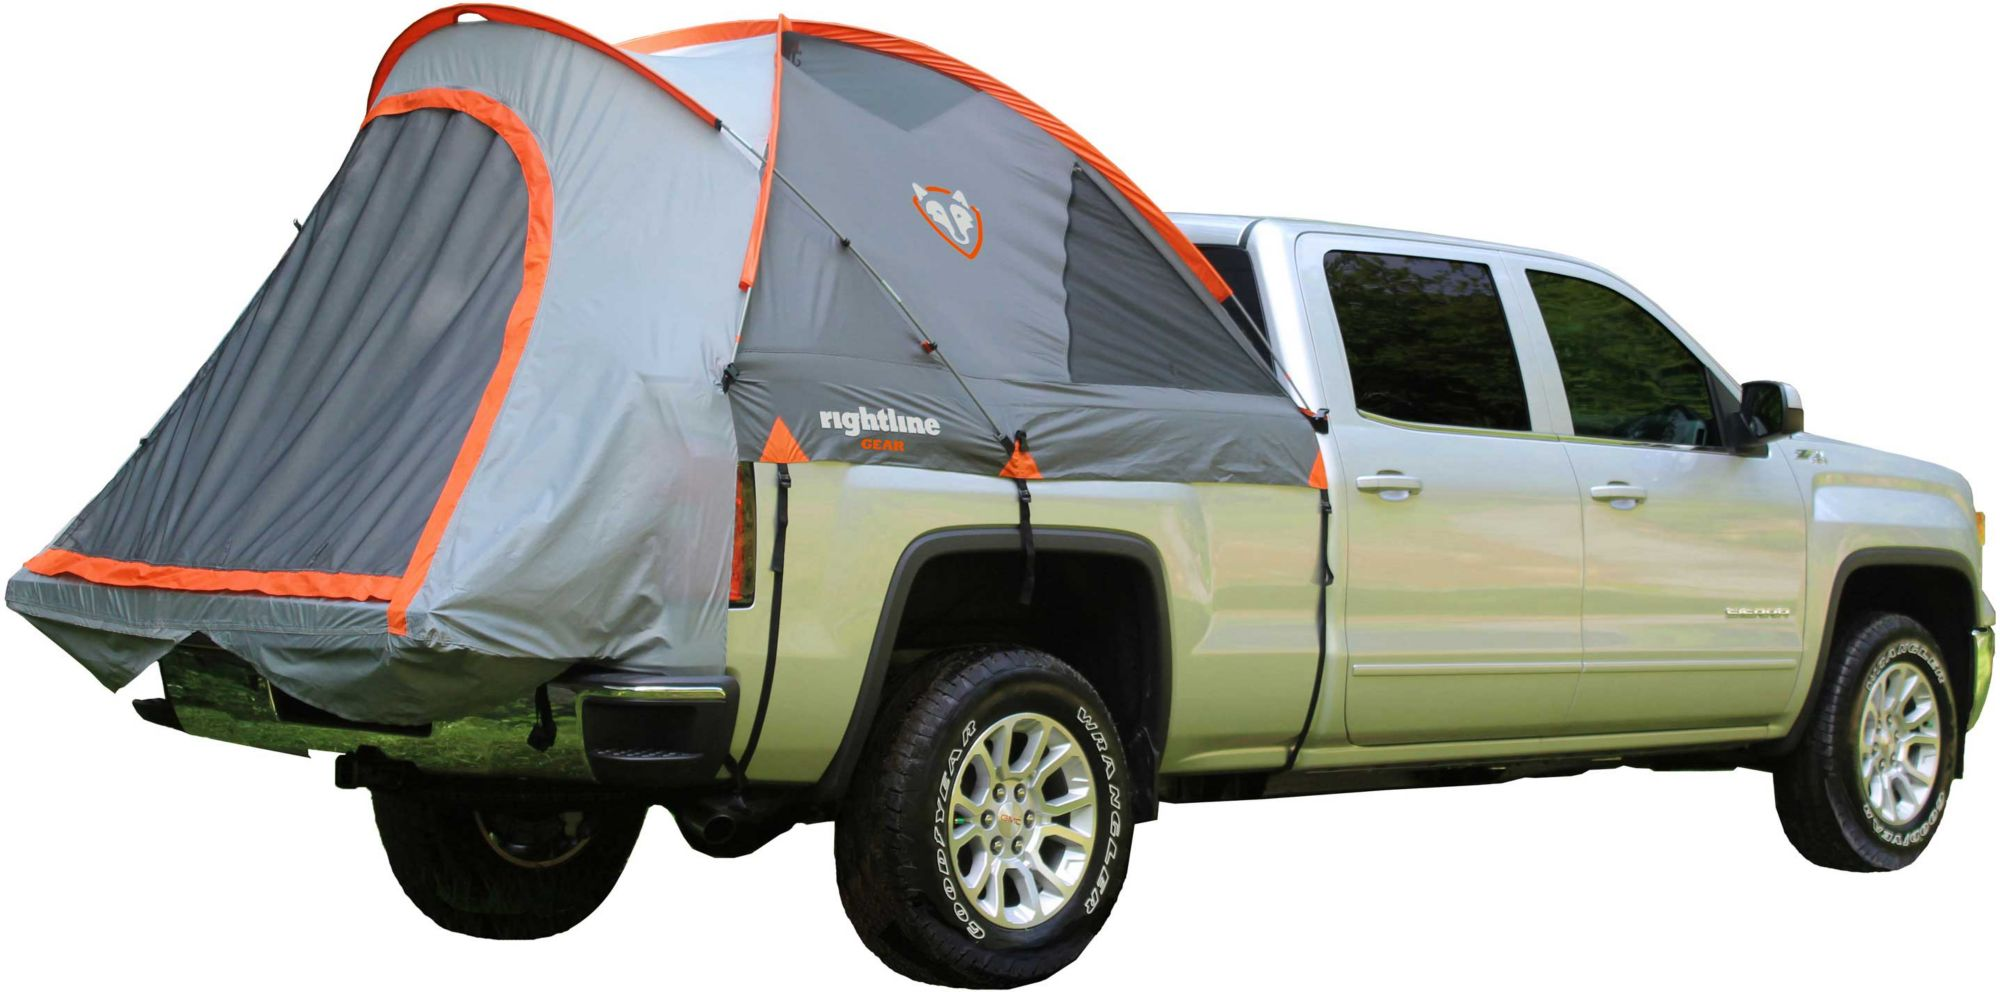 noImageFound ???  sc 1 st  DICKu0027S Sporting Goods & Rightline Gear 2 Person Truck Tent | DICKu0027S Sporting Goods